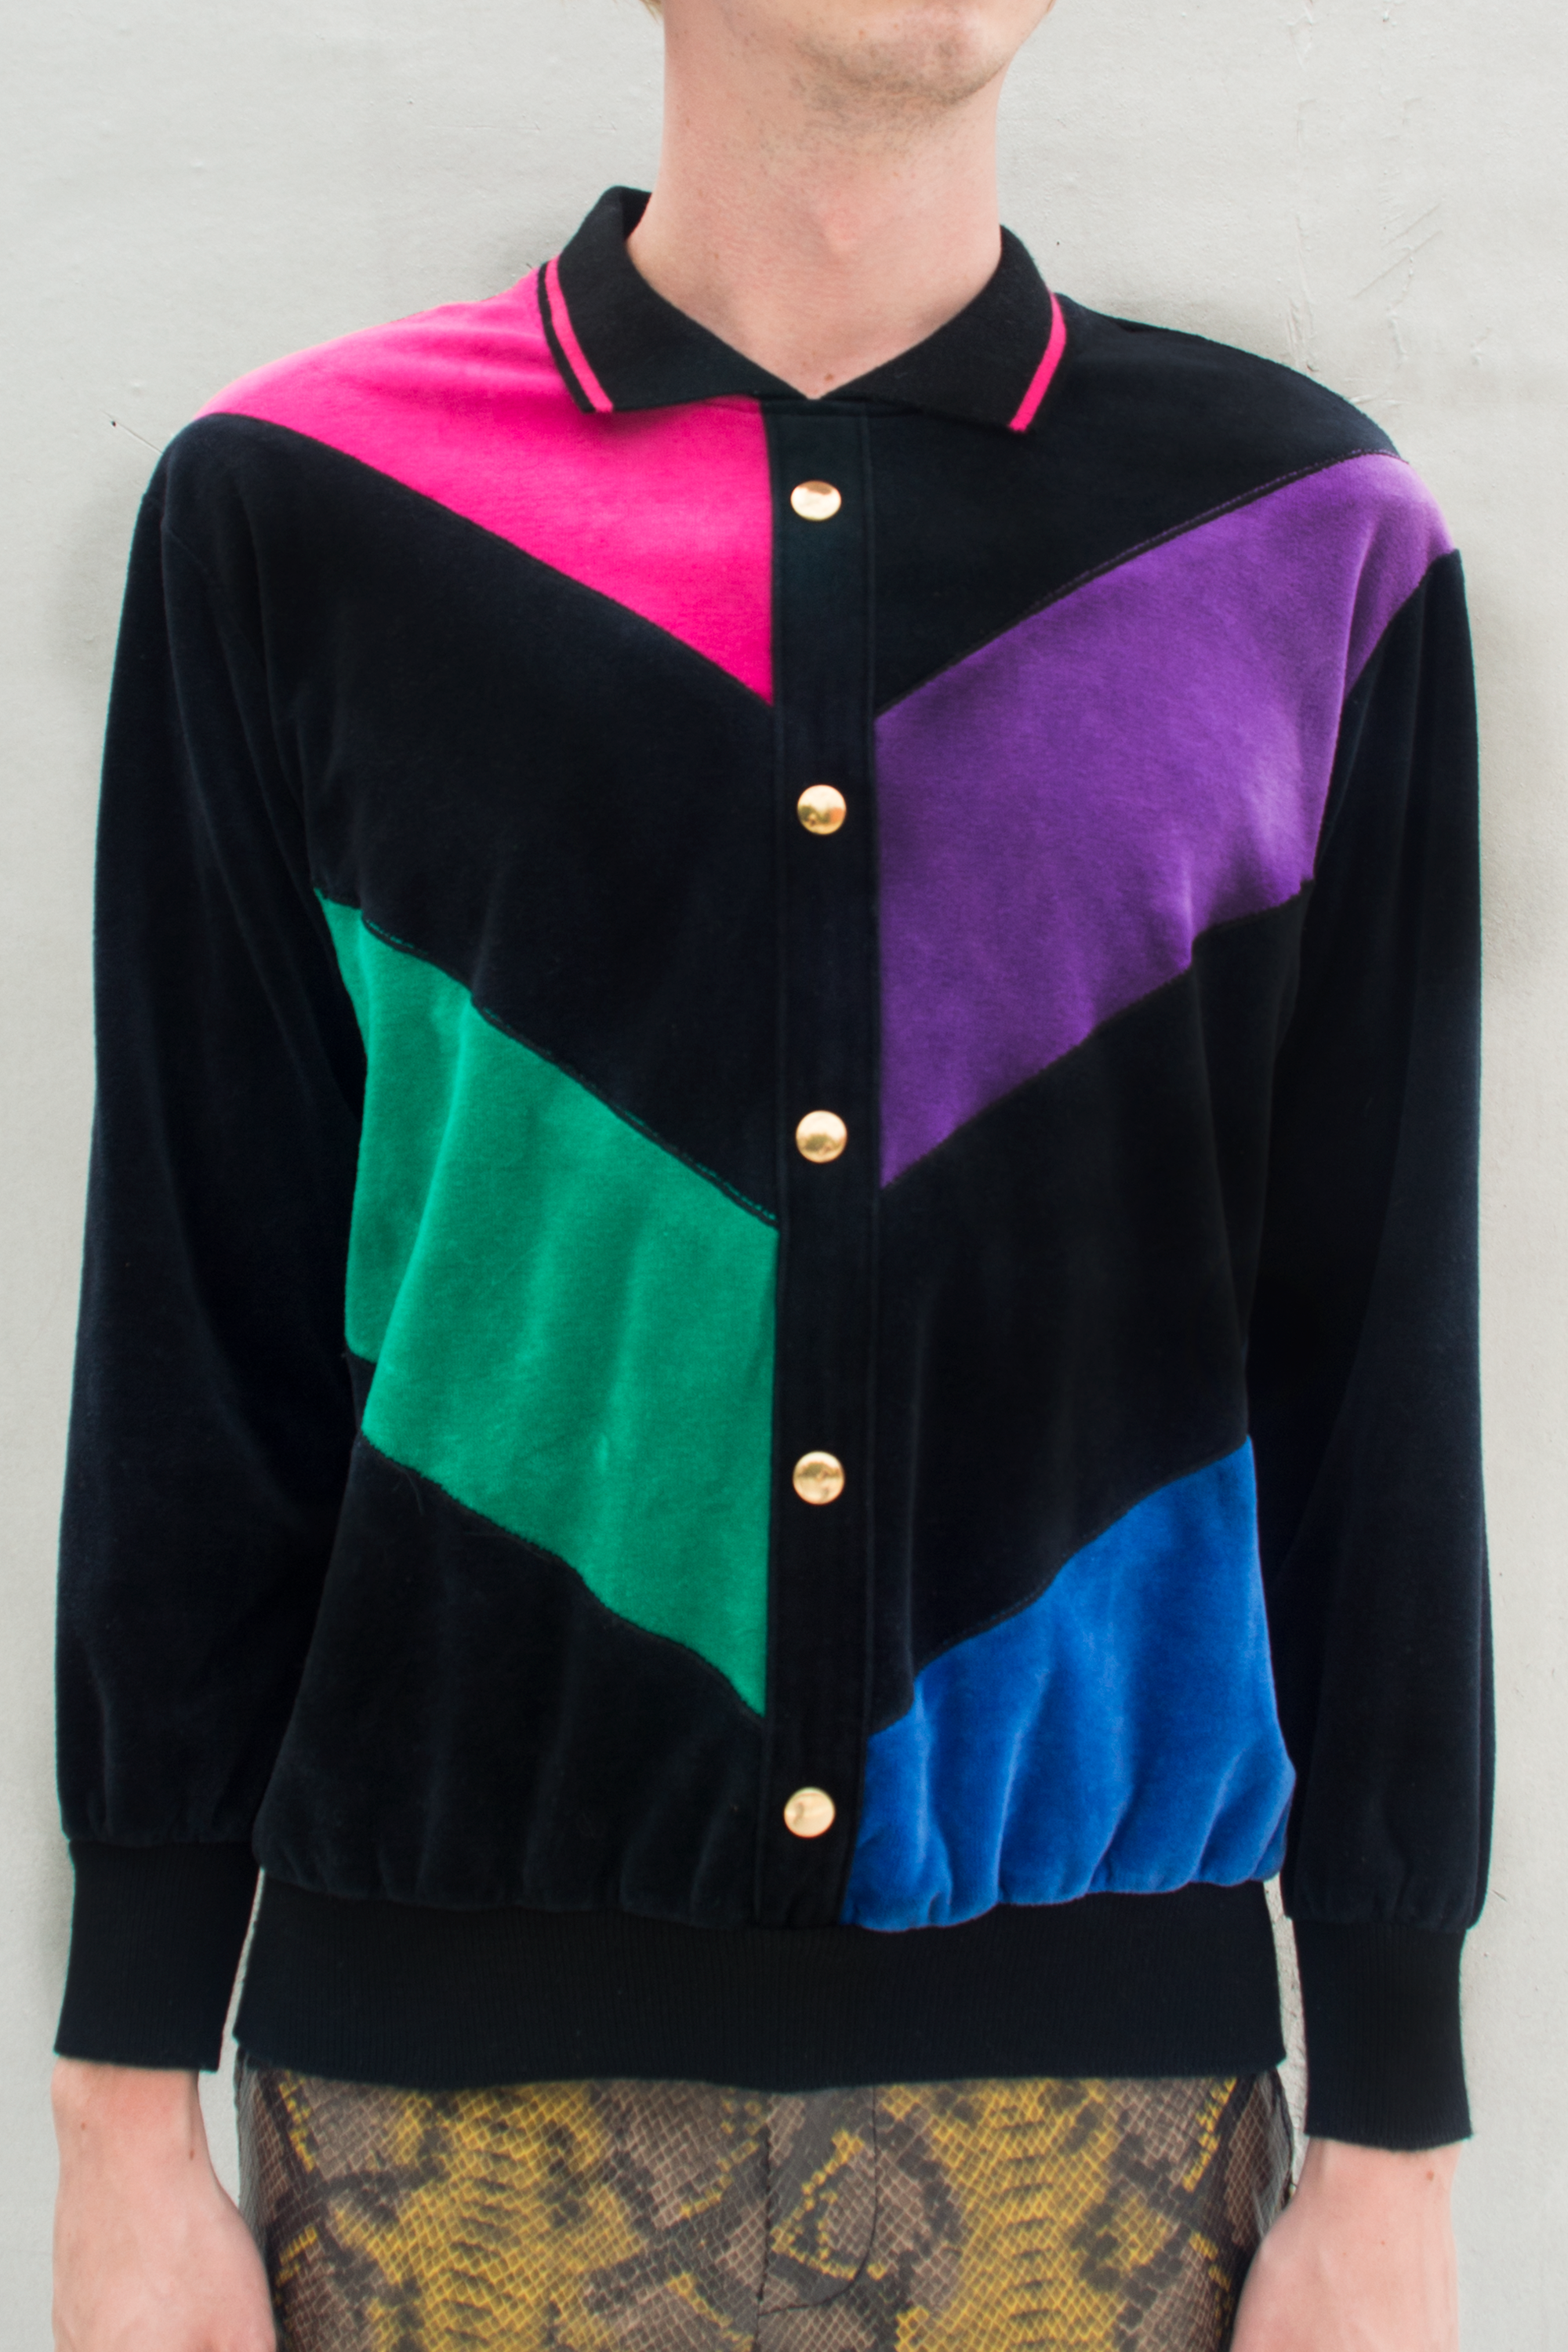 Gucci inspired color block sweatshirt